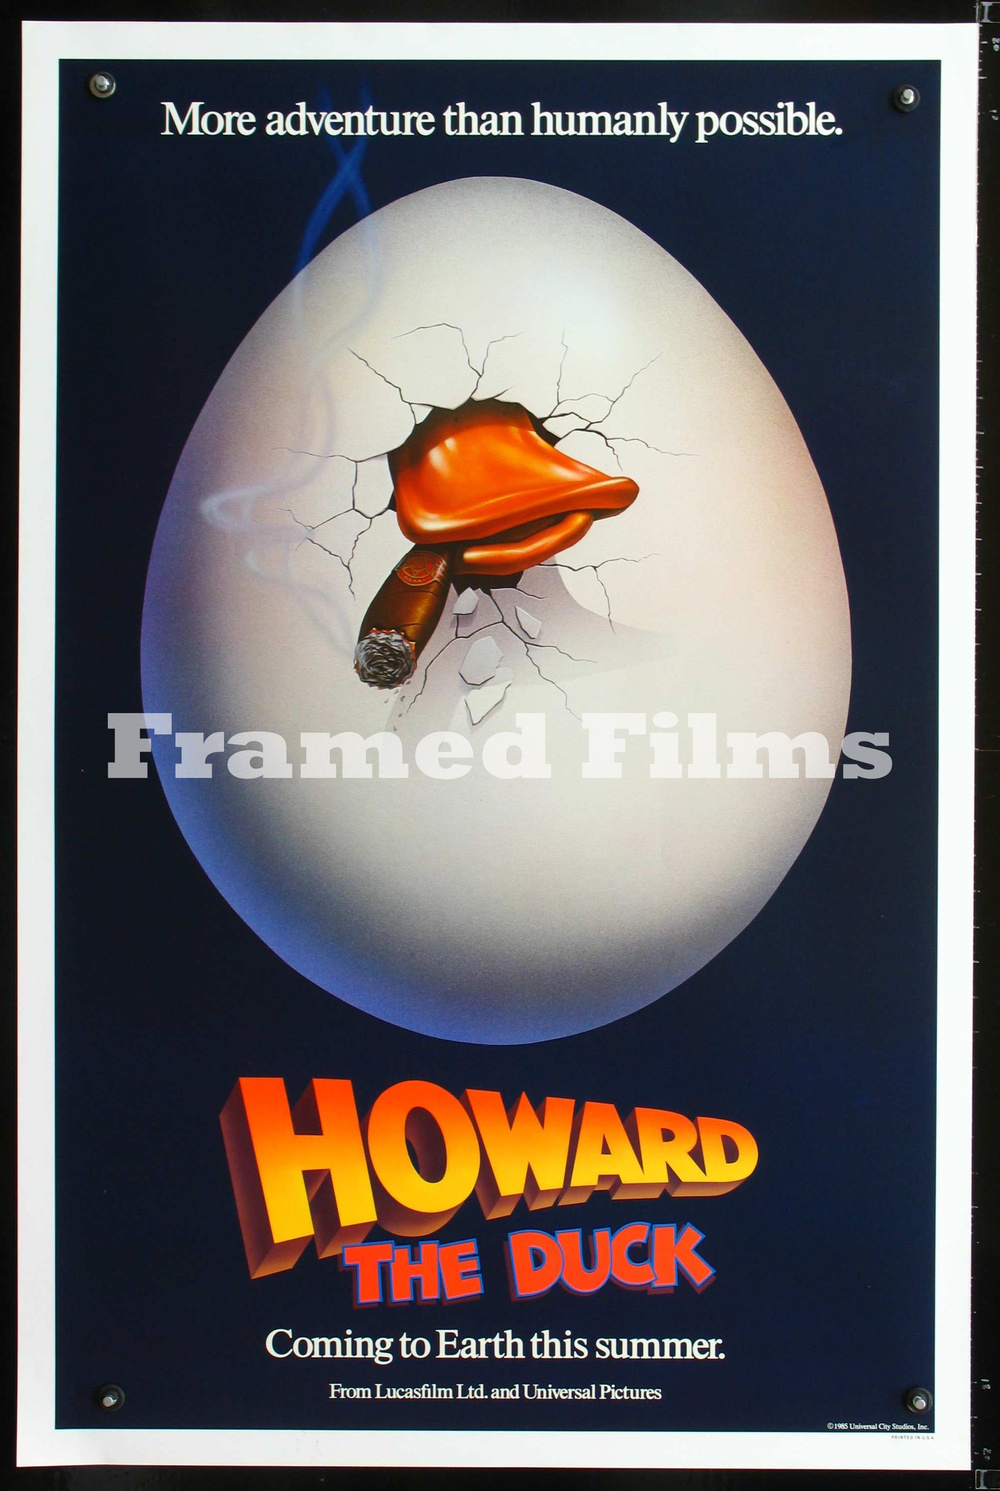 howard_the_duck_teaser_dupe3_JA01252_L.jpg